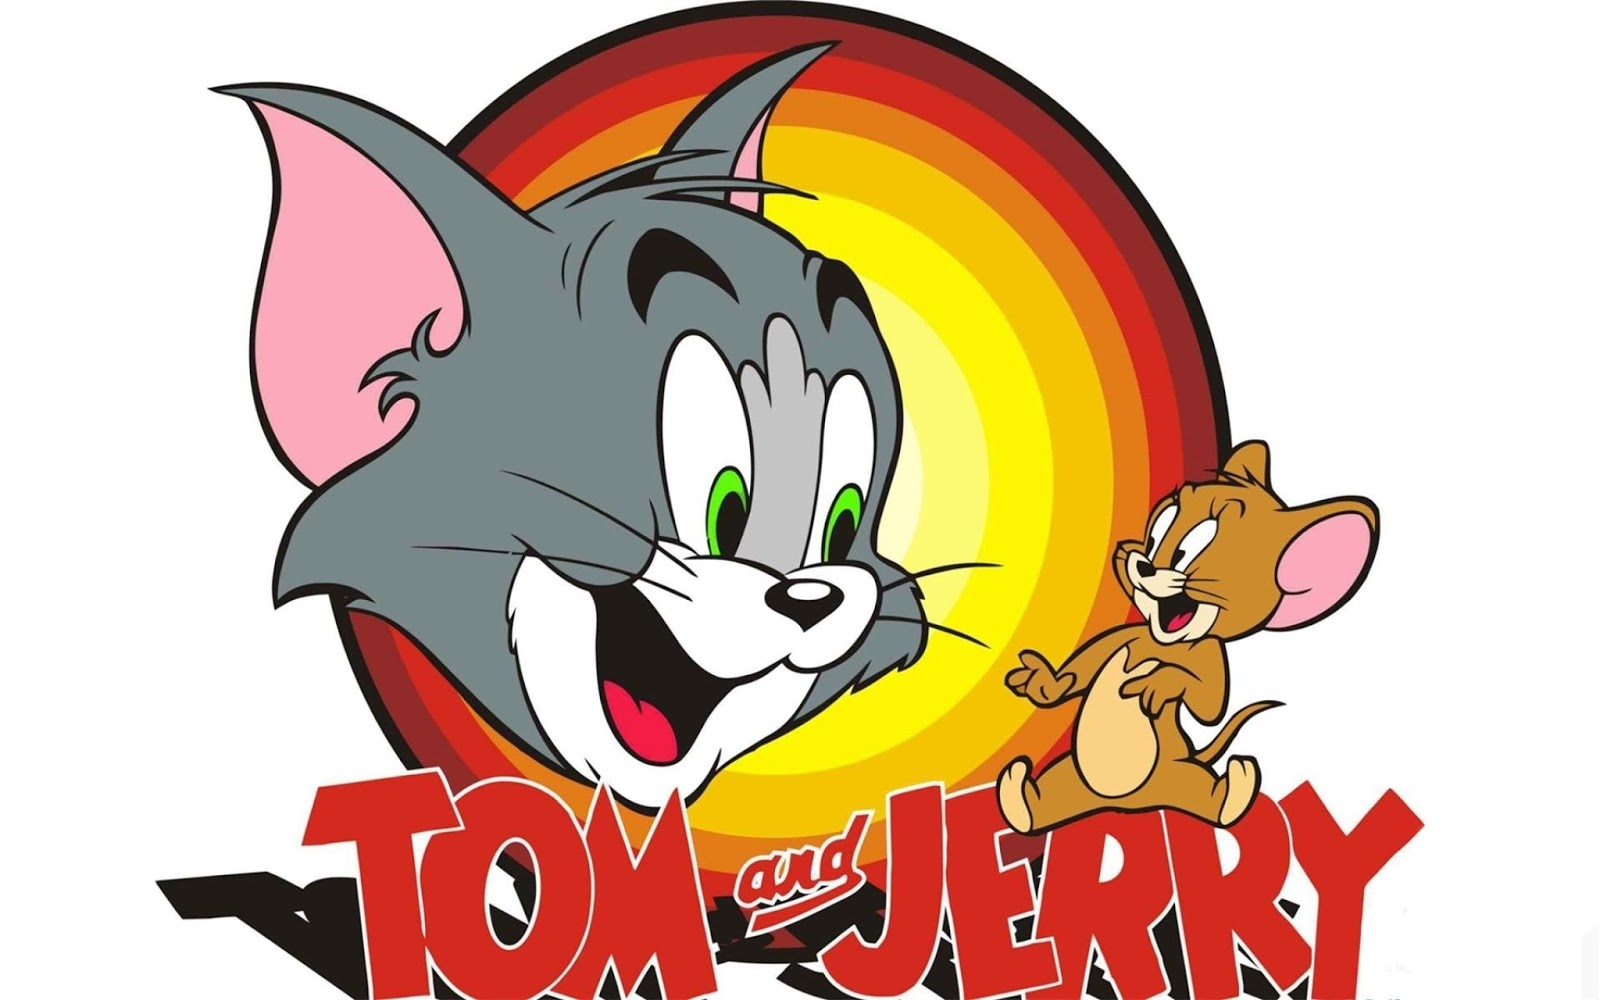 Tom and jerry all episodes torrent download